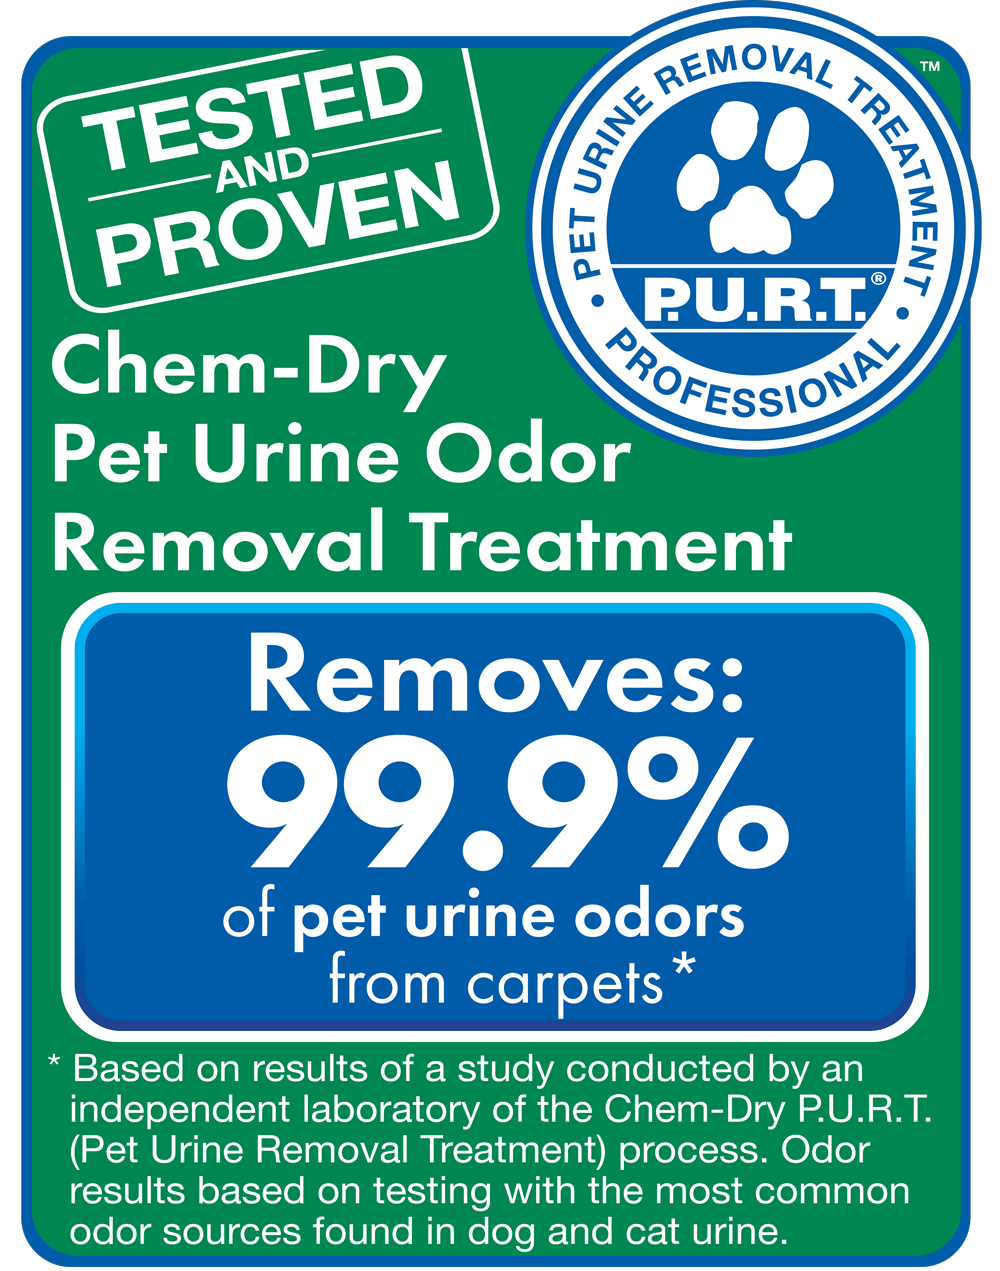 Chem-Dry in san francisco removes bacteria from upholstery